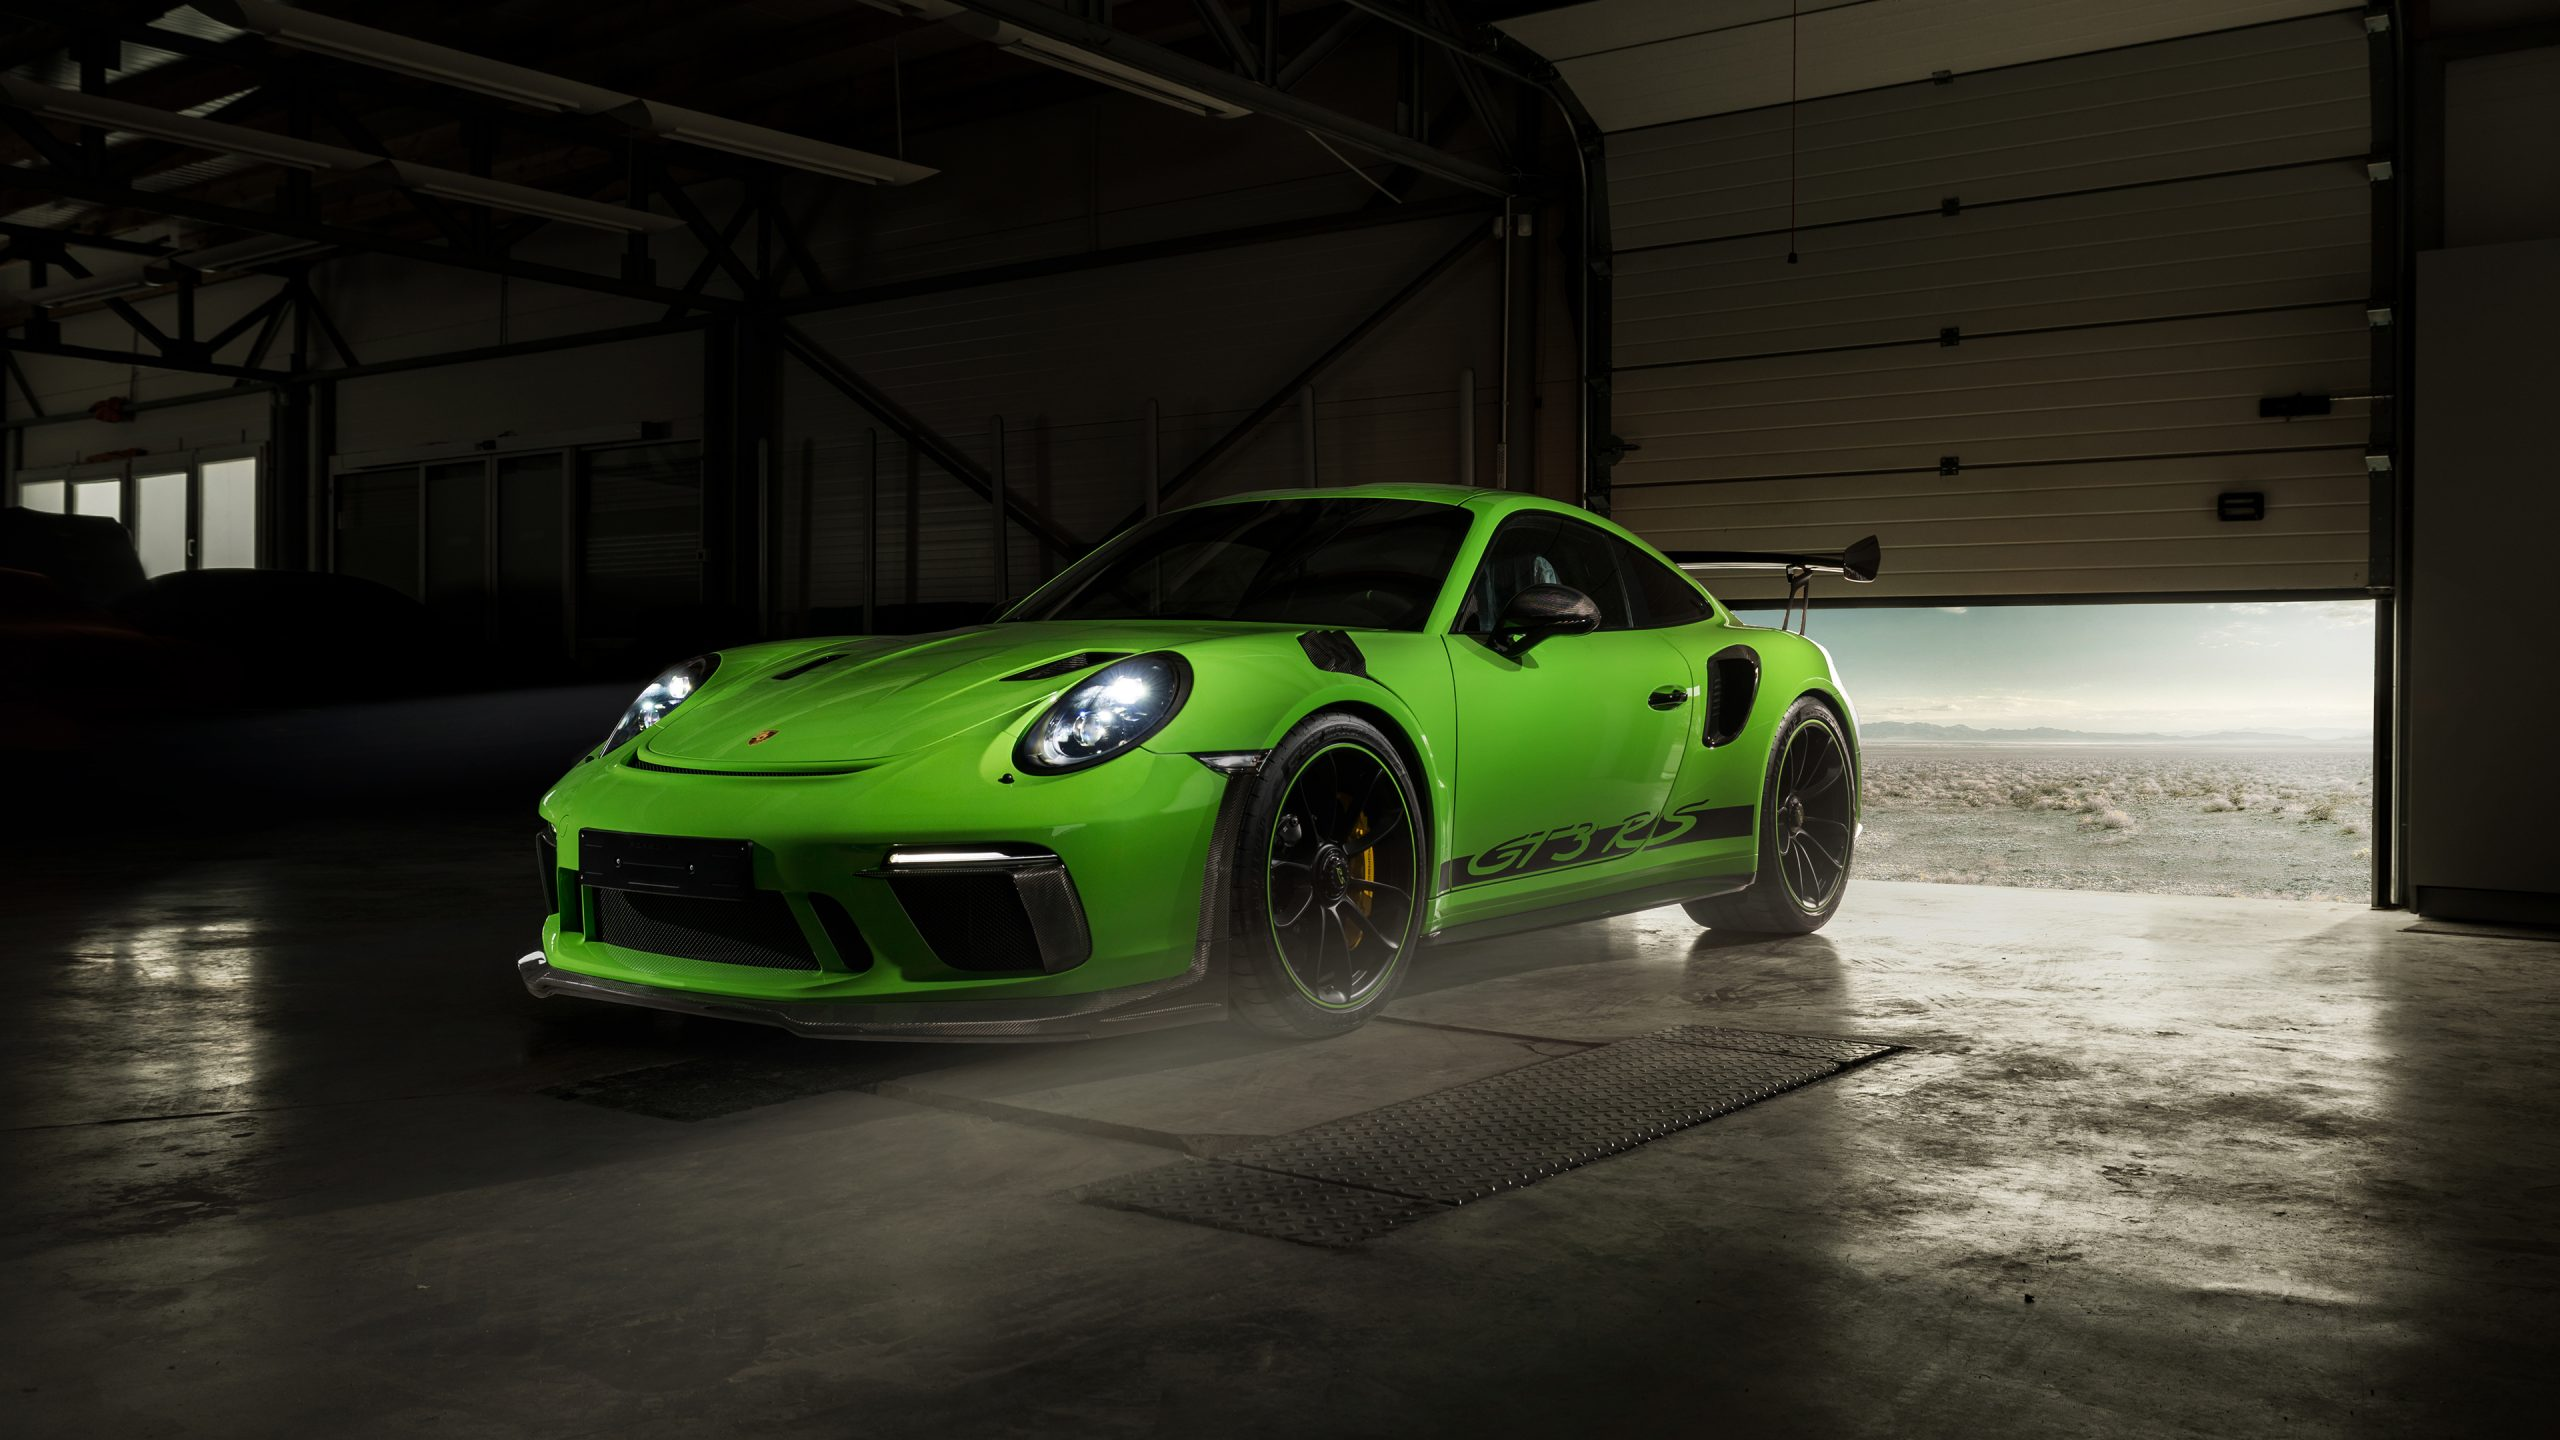 Porsche 911 Gt3 Rs Techart 4k Hd Wallpaper